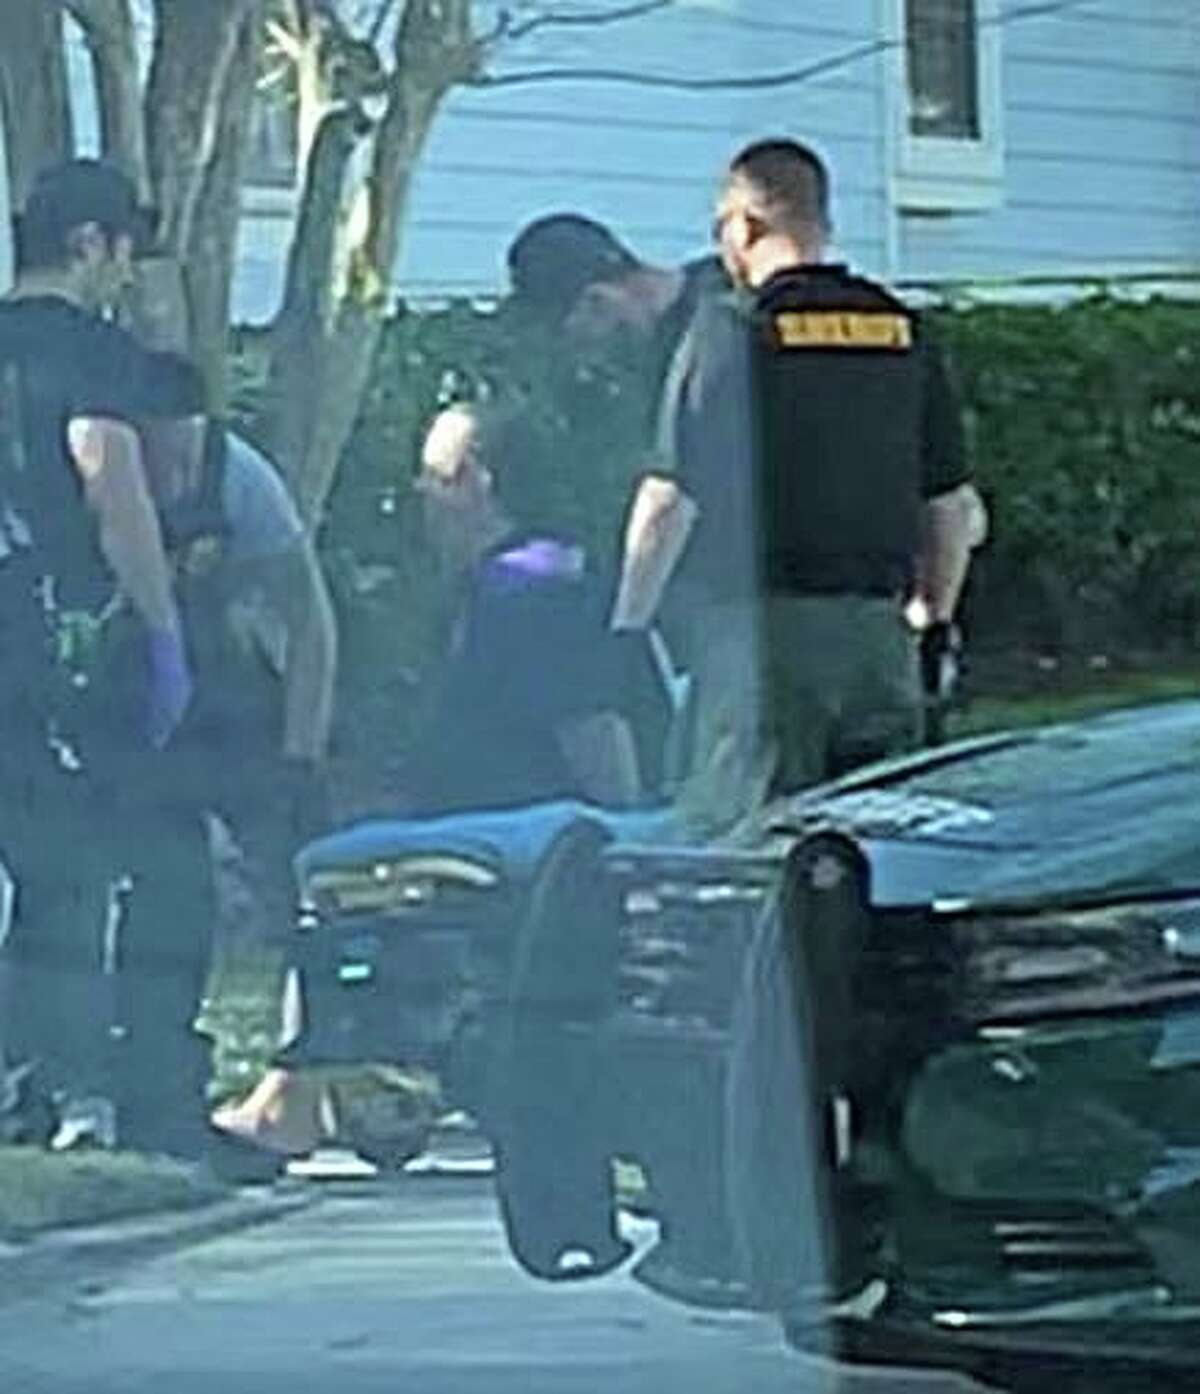 Neighbors in Celebration, Fla. say this is a photo of a man being arrested on Monday, Jan. 13, 2020 by Orange County sheriff deputies at a home where they are doing a death investigation. One neighbor says they had called police after not seeing the family's children for several days.